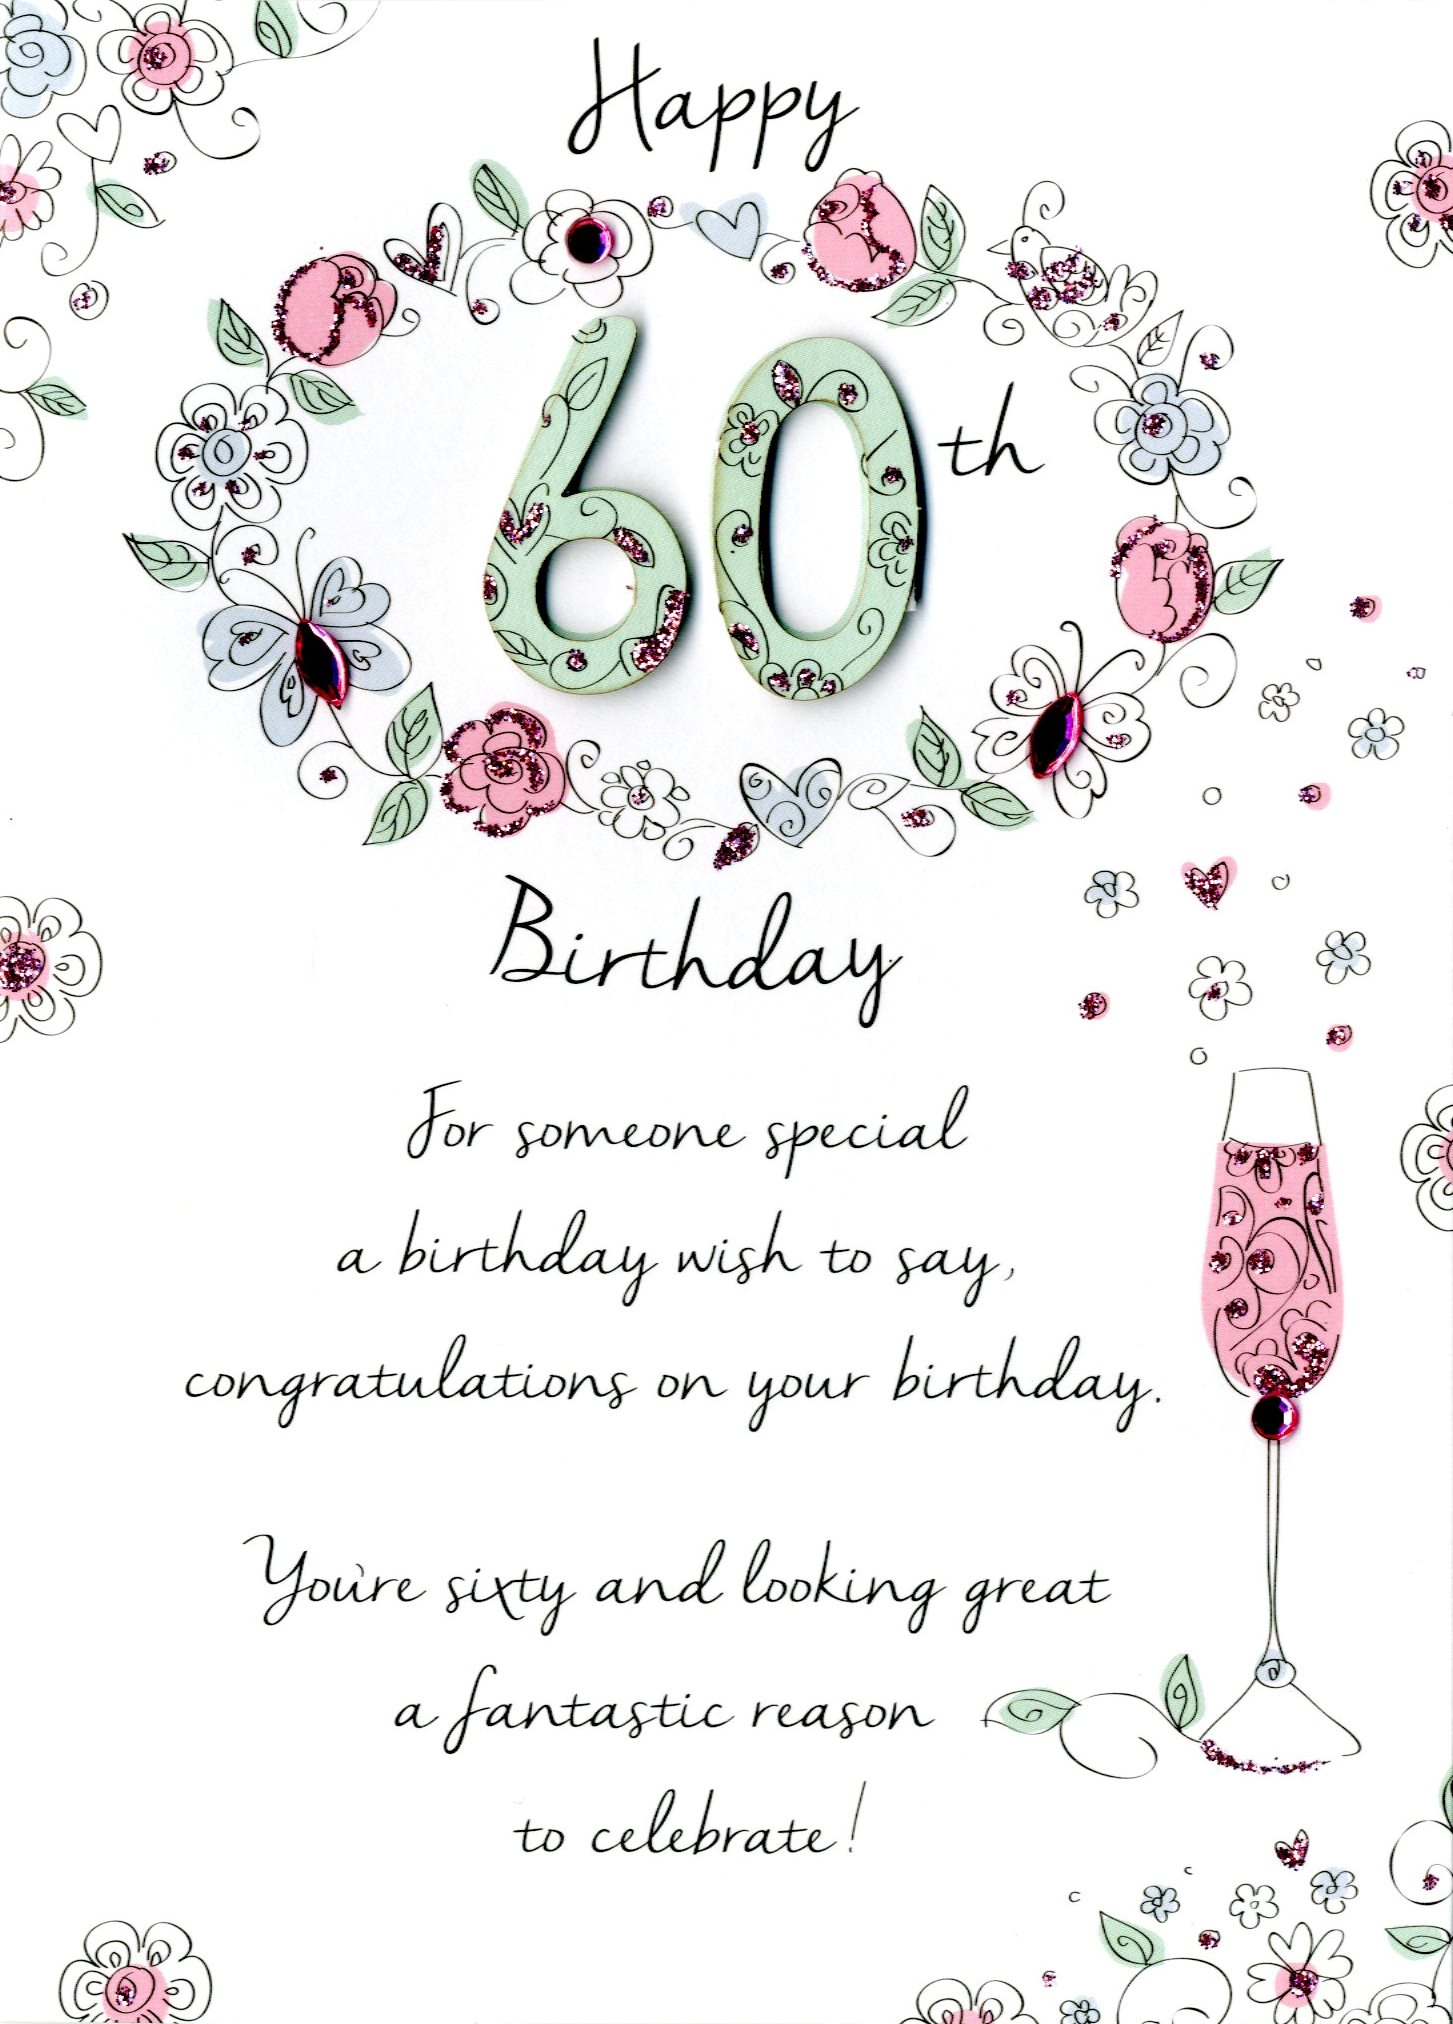 Happy birthday wishes and birthday quotes picture to wish happy - Female 60th Birthday Greeting Card Cards Love Kates